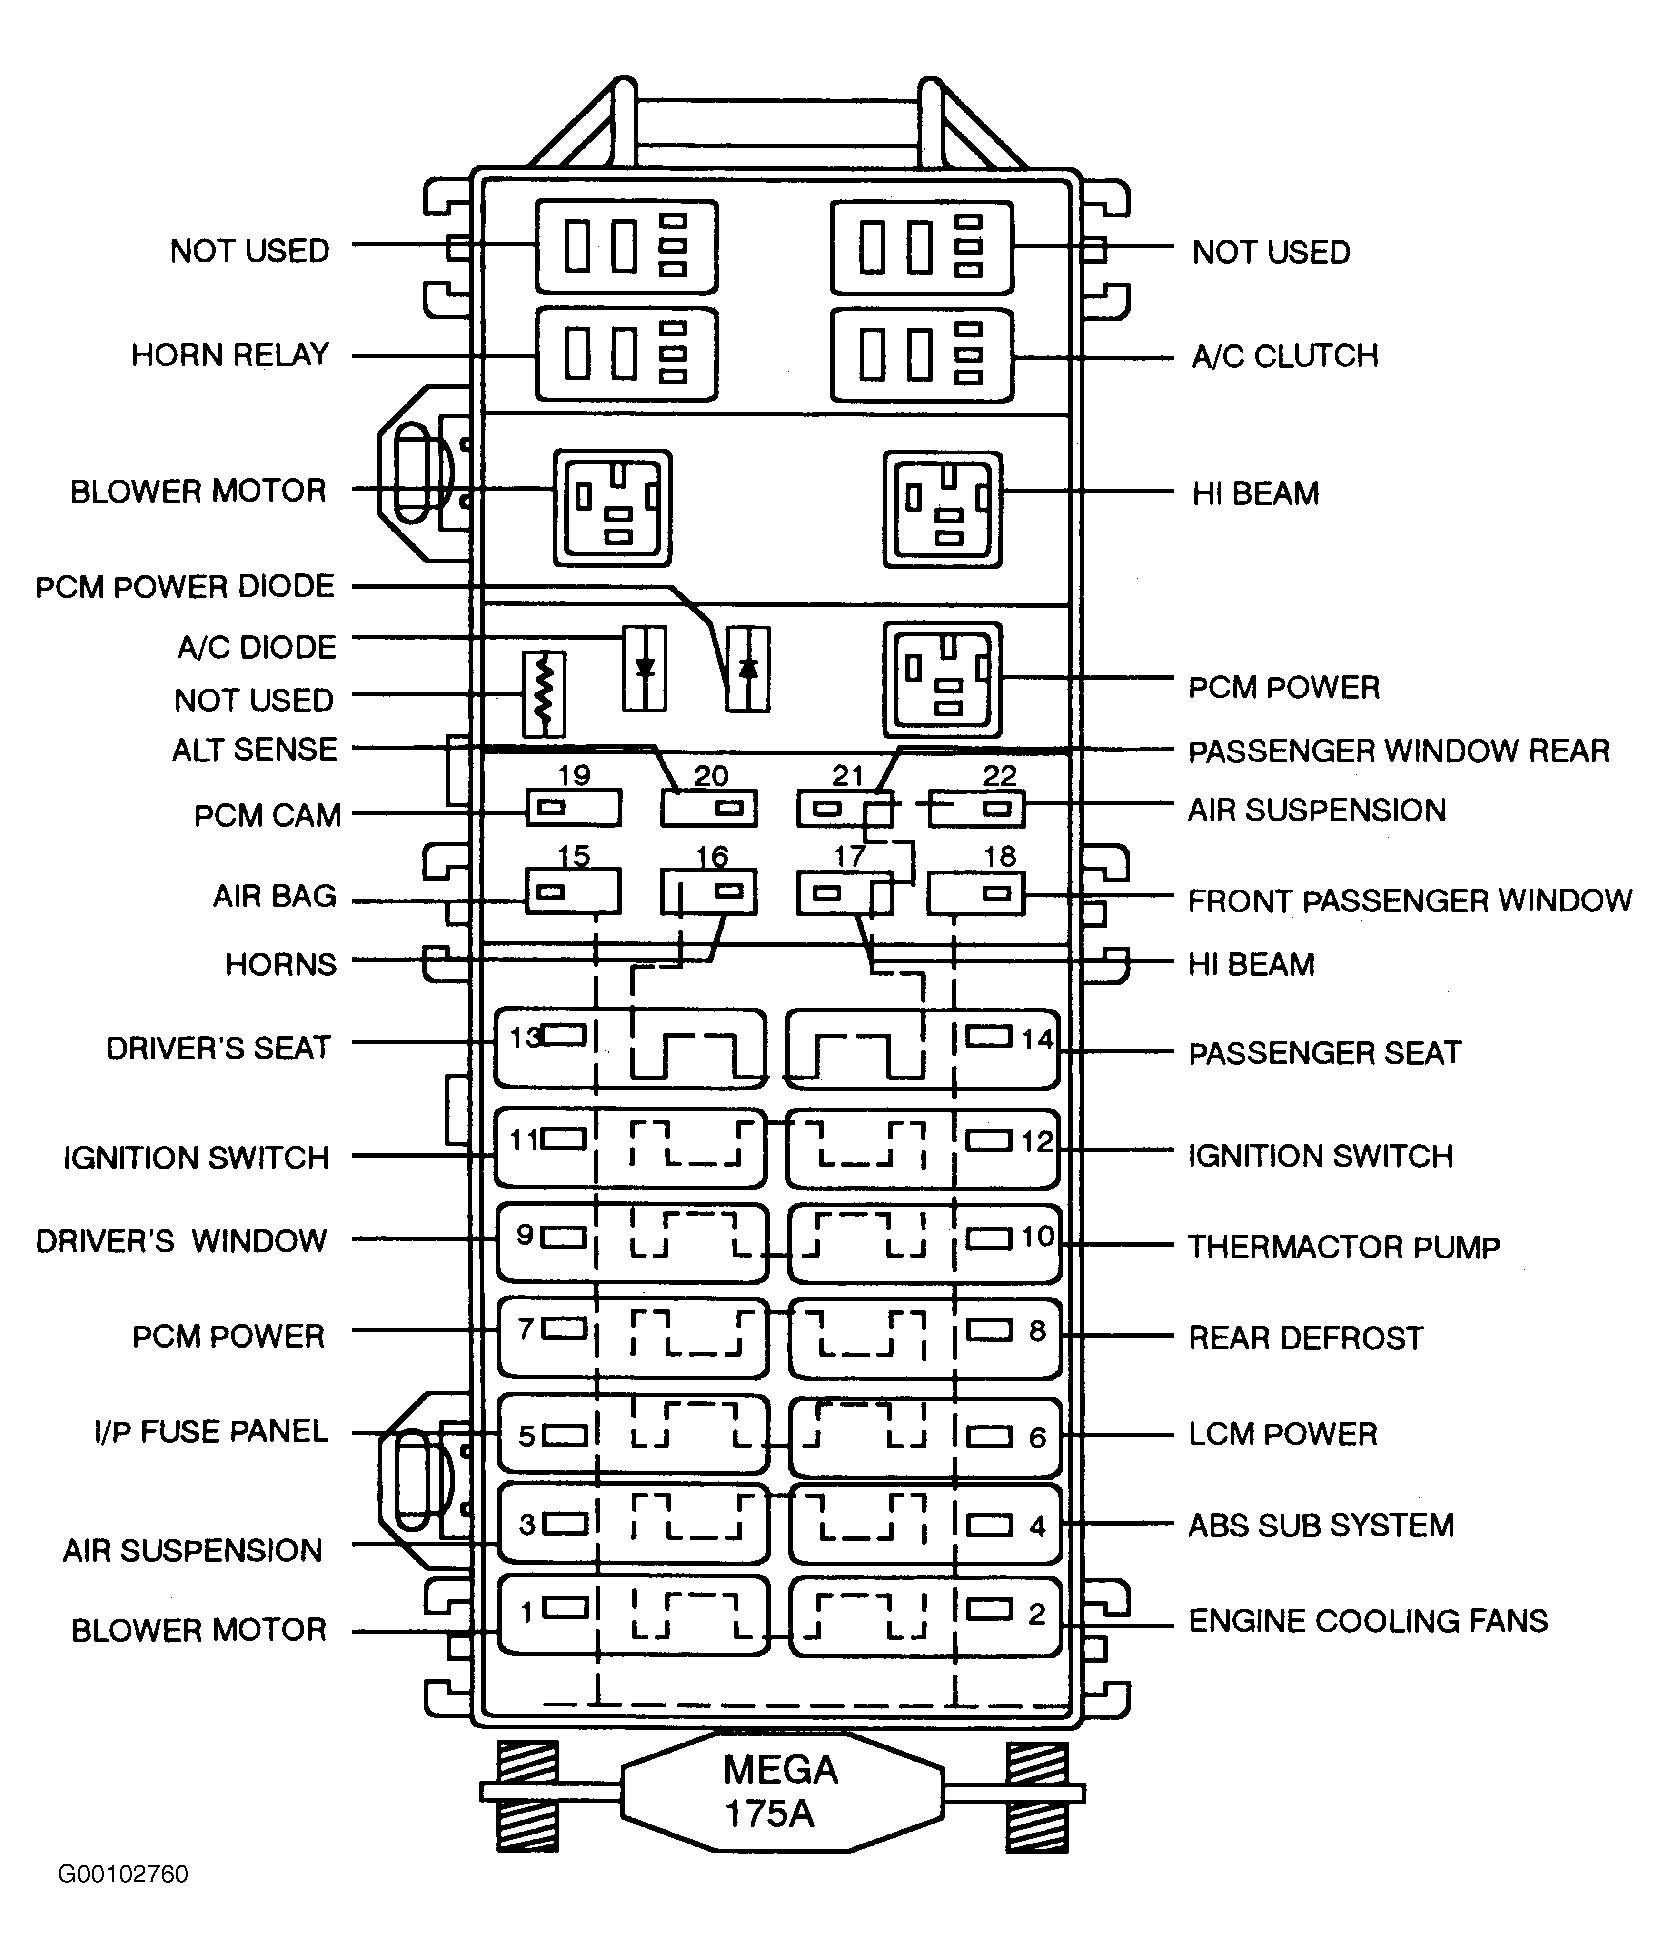 2009 Lincoln Town Car Fuse Box Wiring Library Diagram H7 2005 Navigator Location